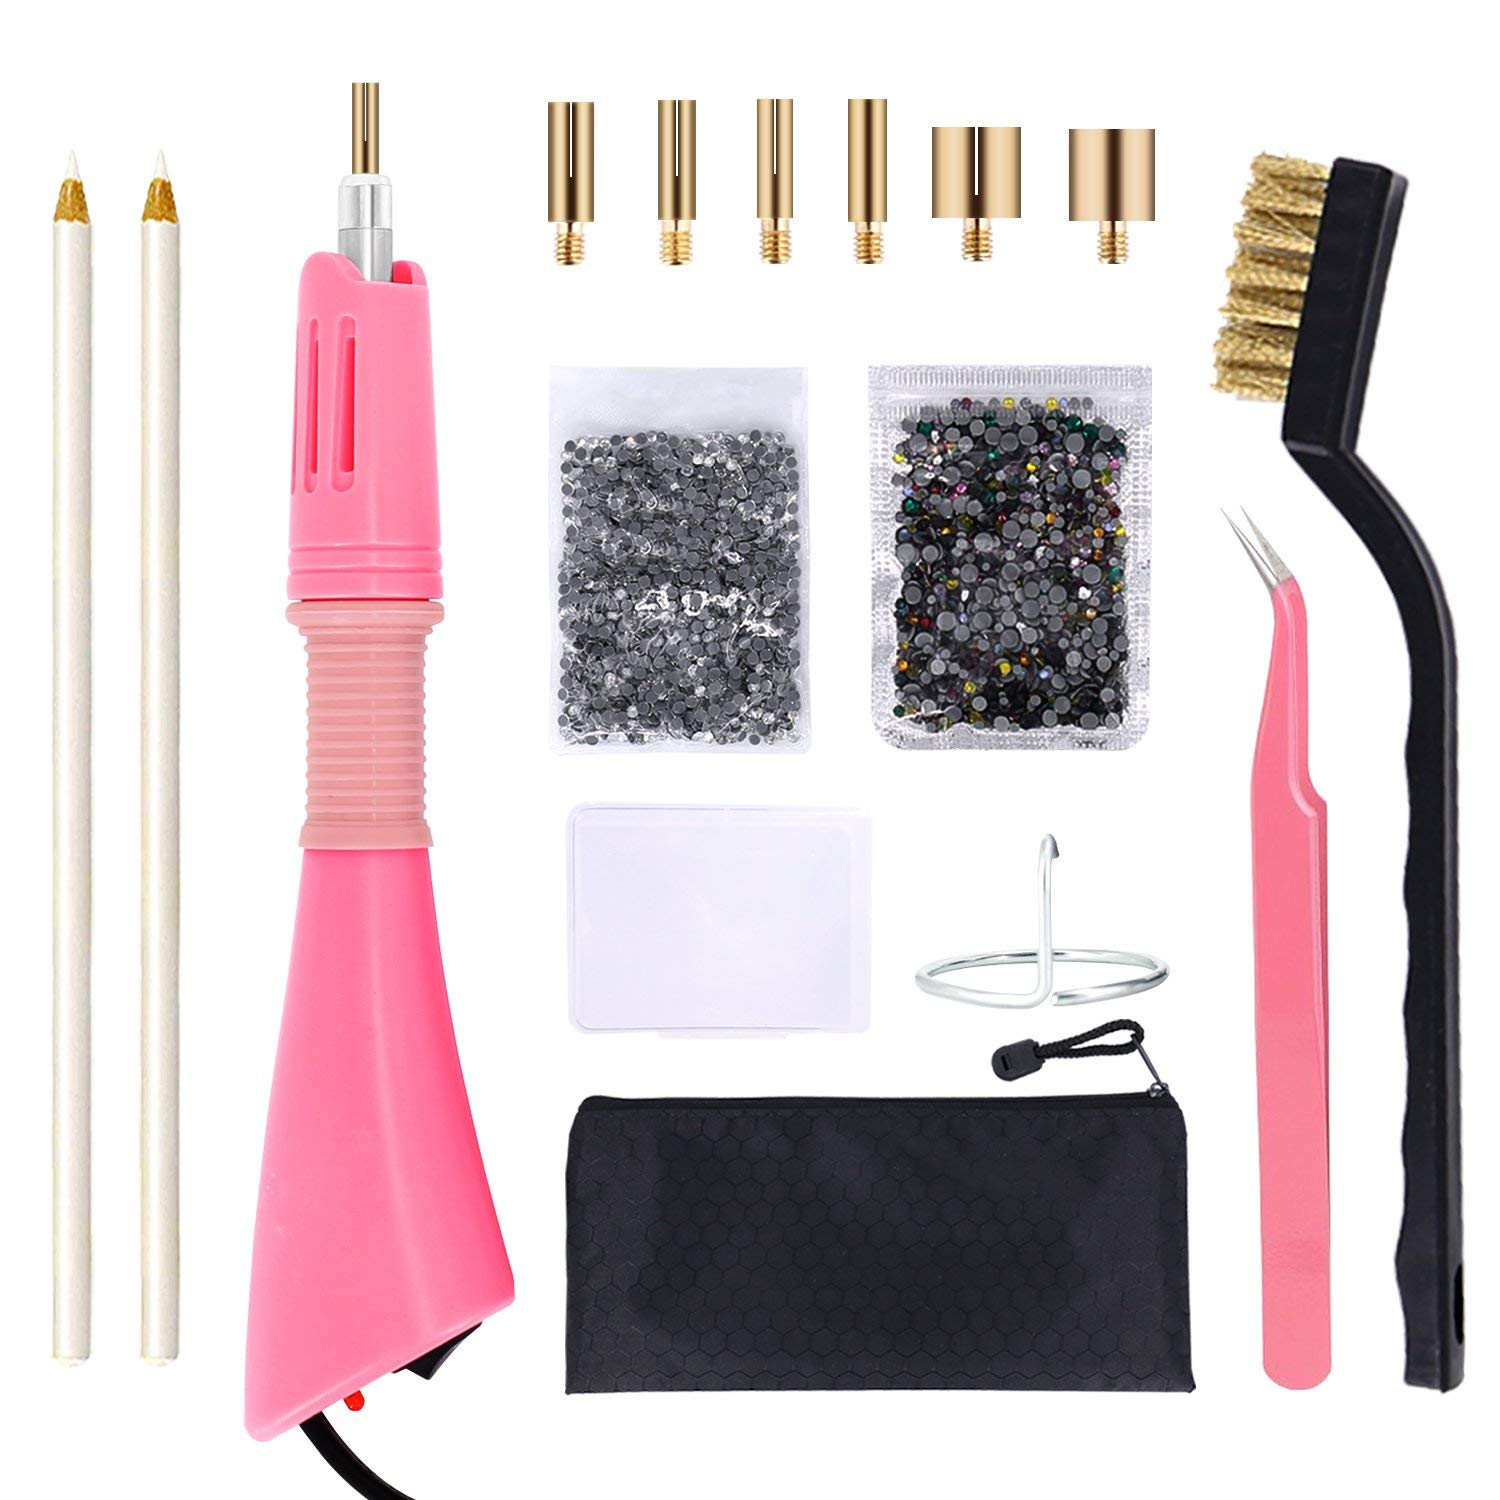 Get Quotations · Hotfix Applicator Rhinestone Setter Kit by GLTECK Hot Fix  Applicator Wand Tool Fix Set with 7 bf682544e891